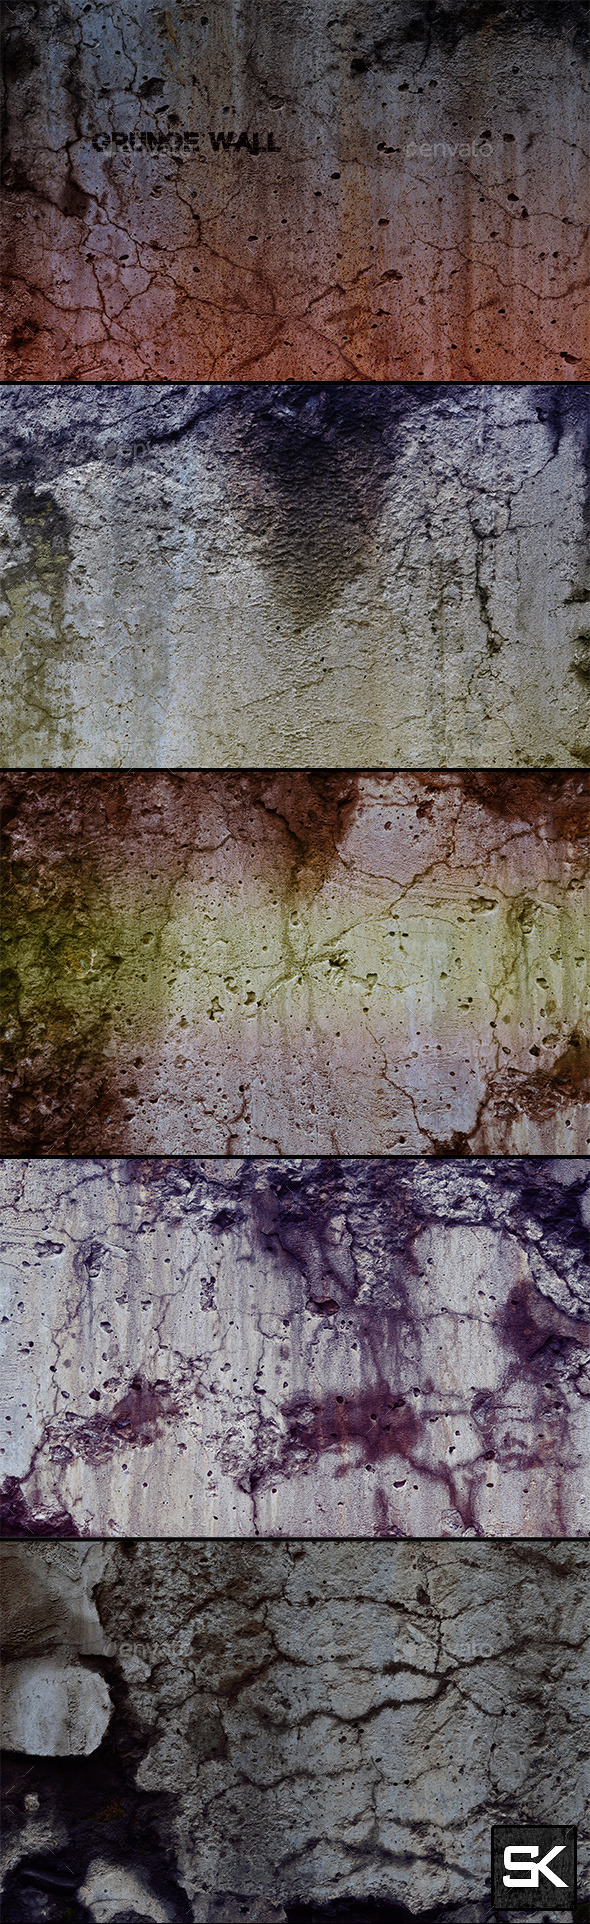 Wall 1 - Industrial / Grunge Textures